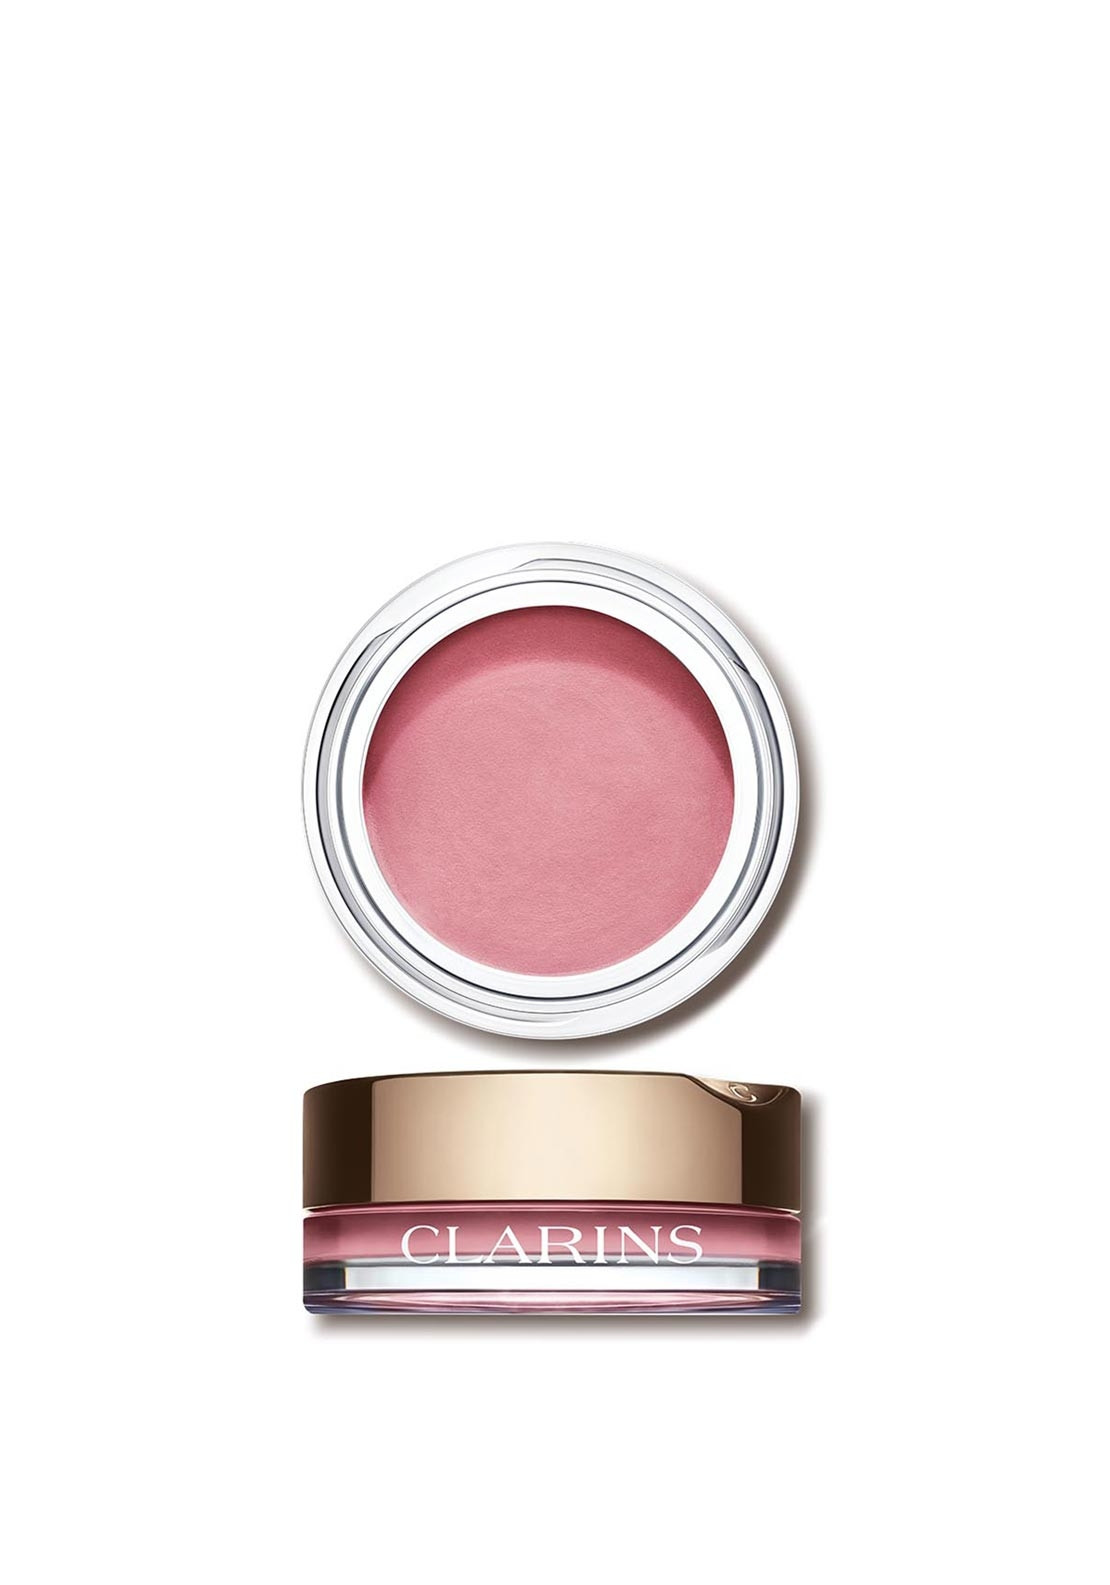 Clarins Ombre Velvet Eyeshadow, 02 Pink Paradise